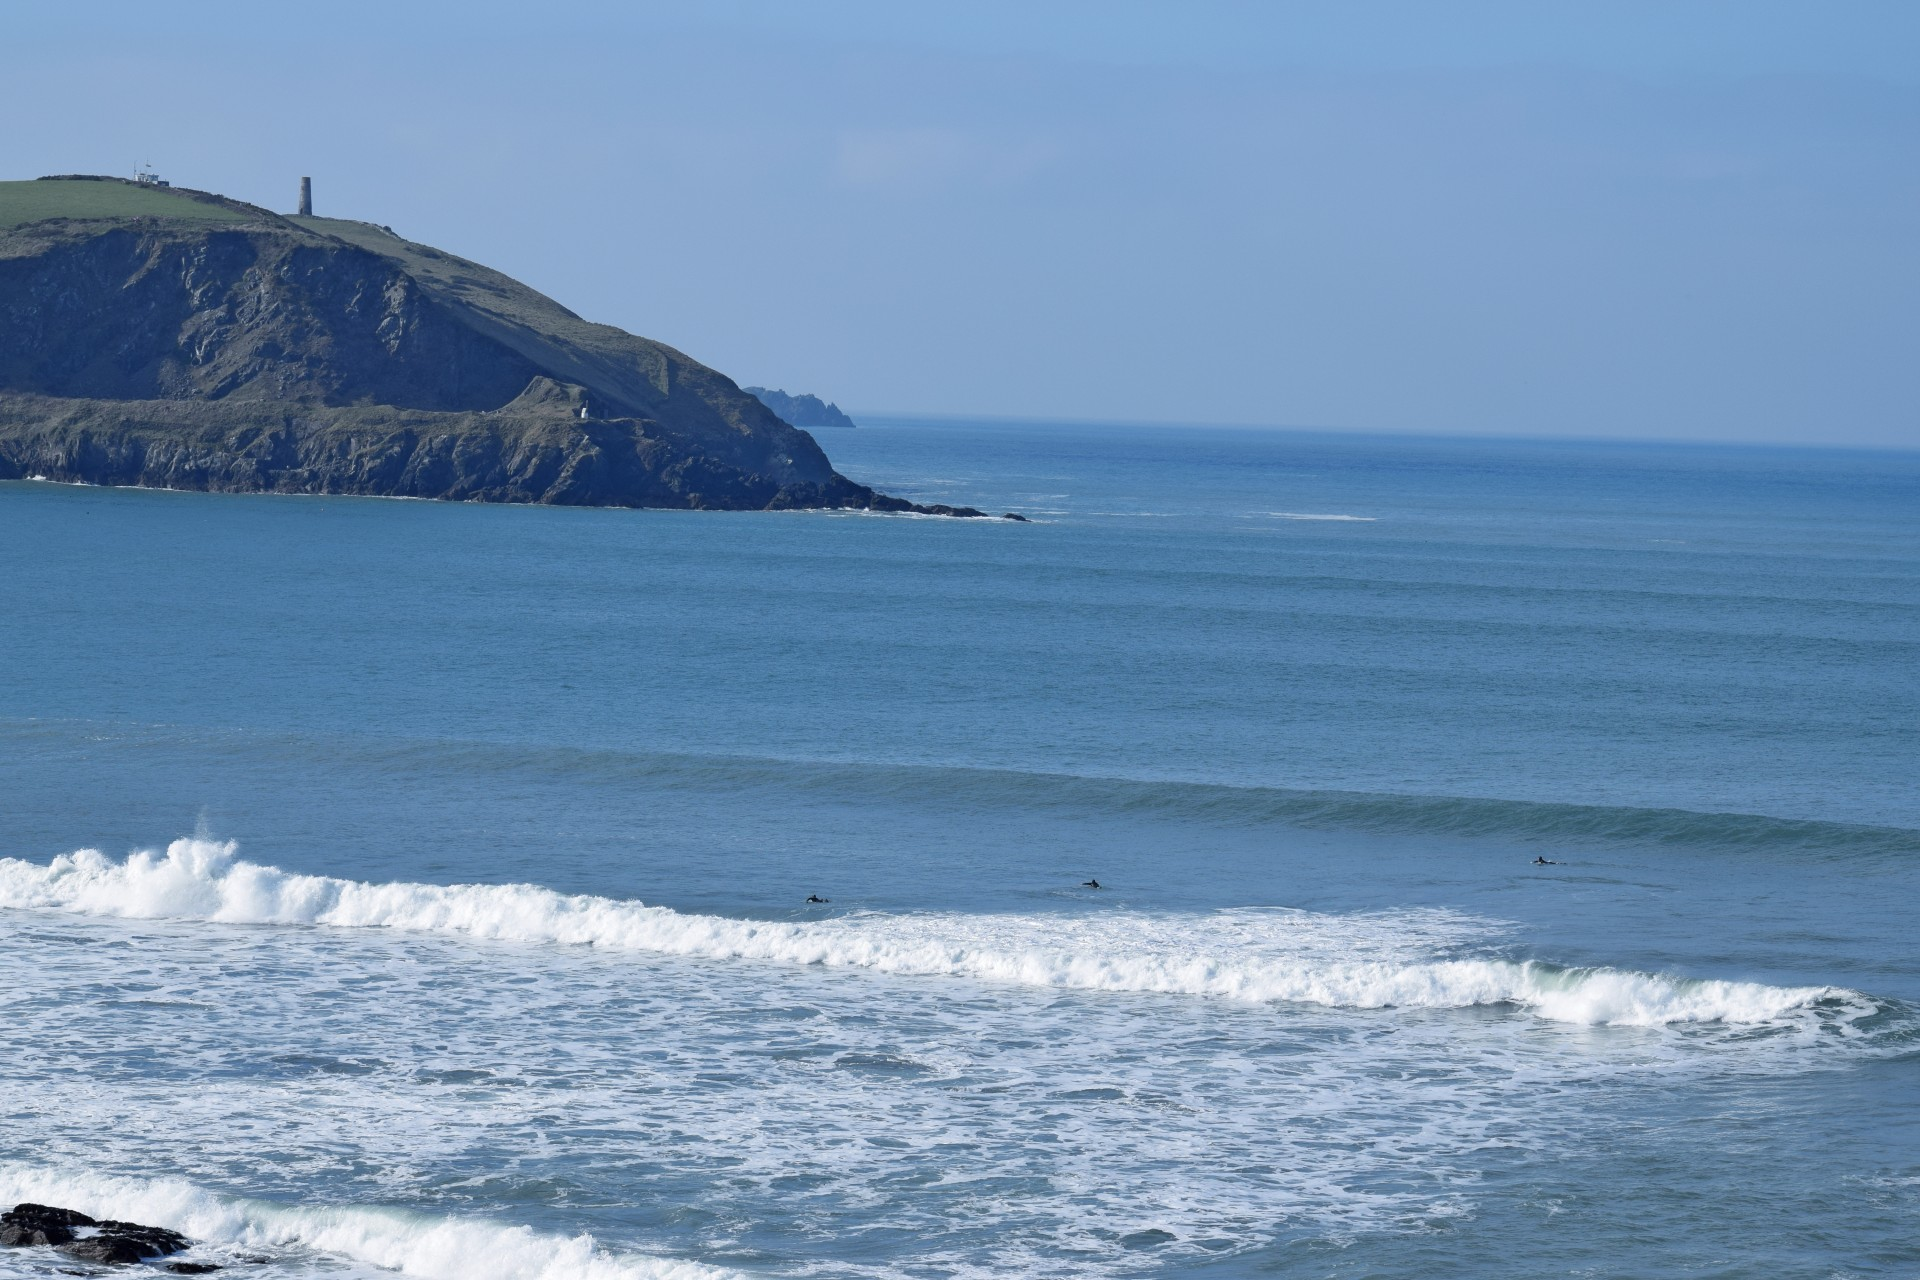 kej's photo of Polzeath